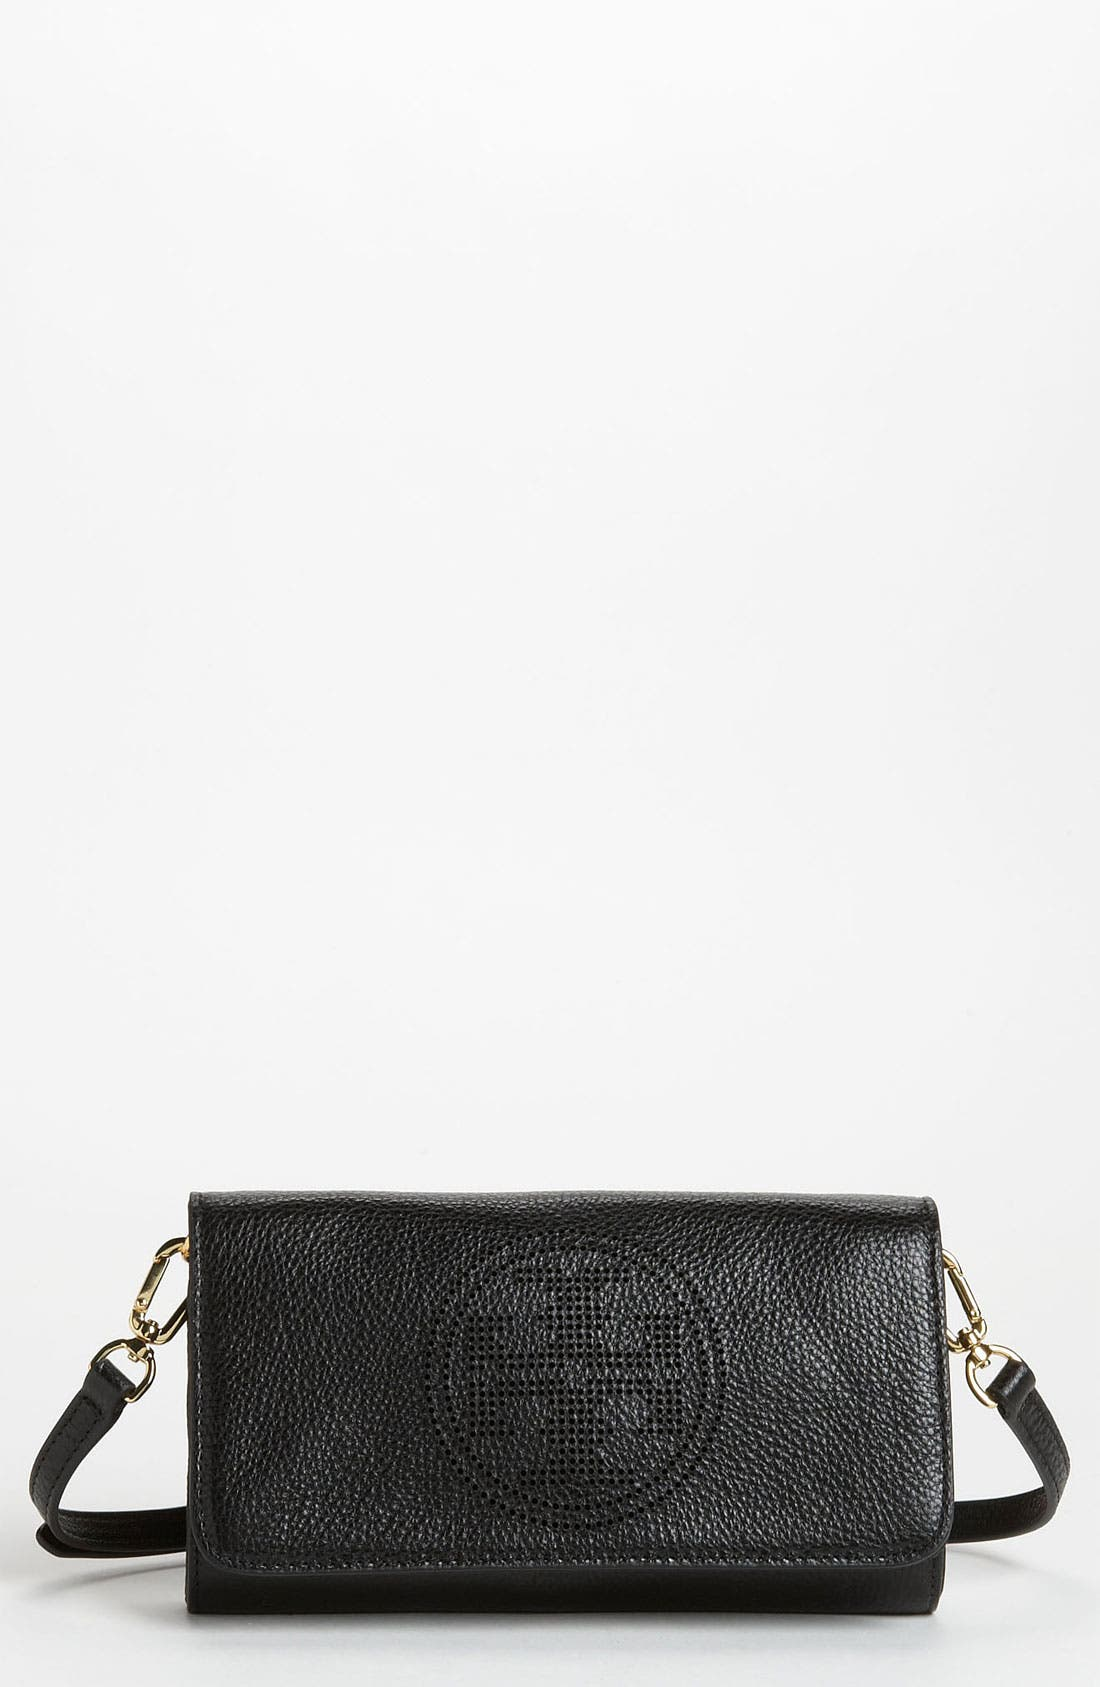 Main Image - Tory Burch 'Small' Perforated Logo Leather Clutch